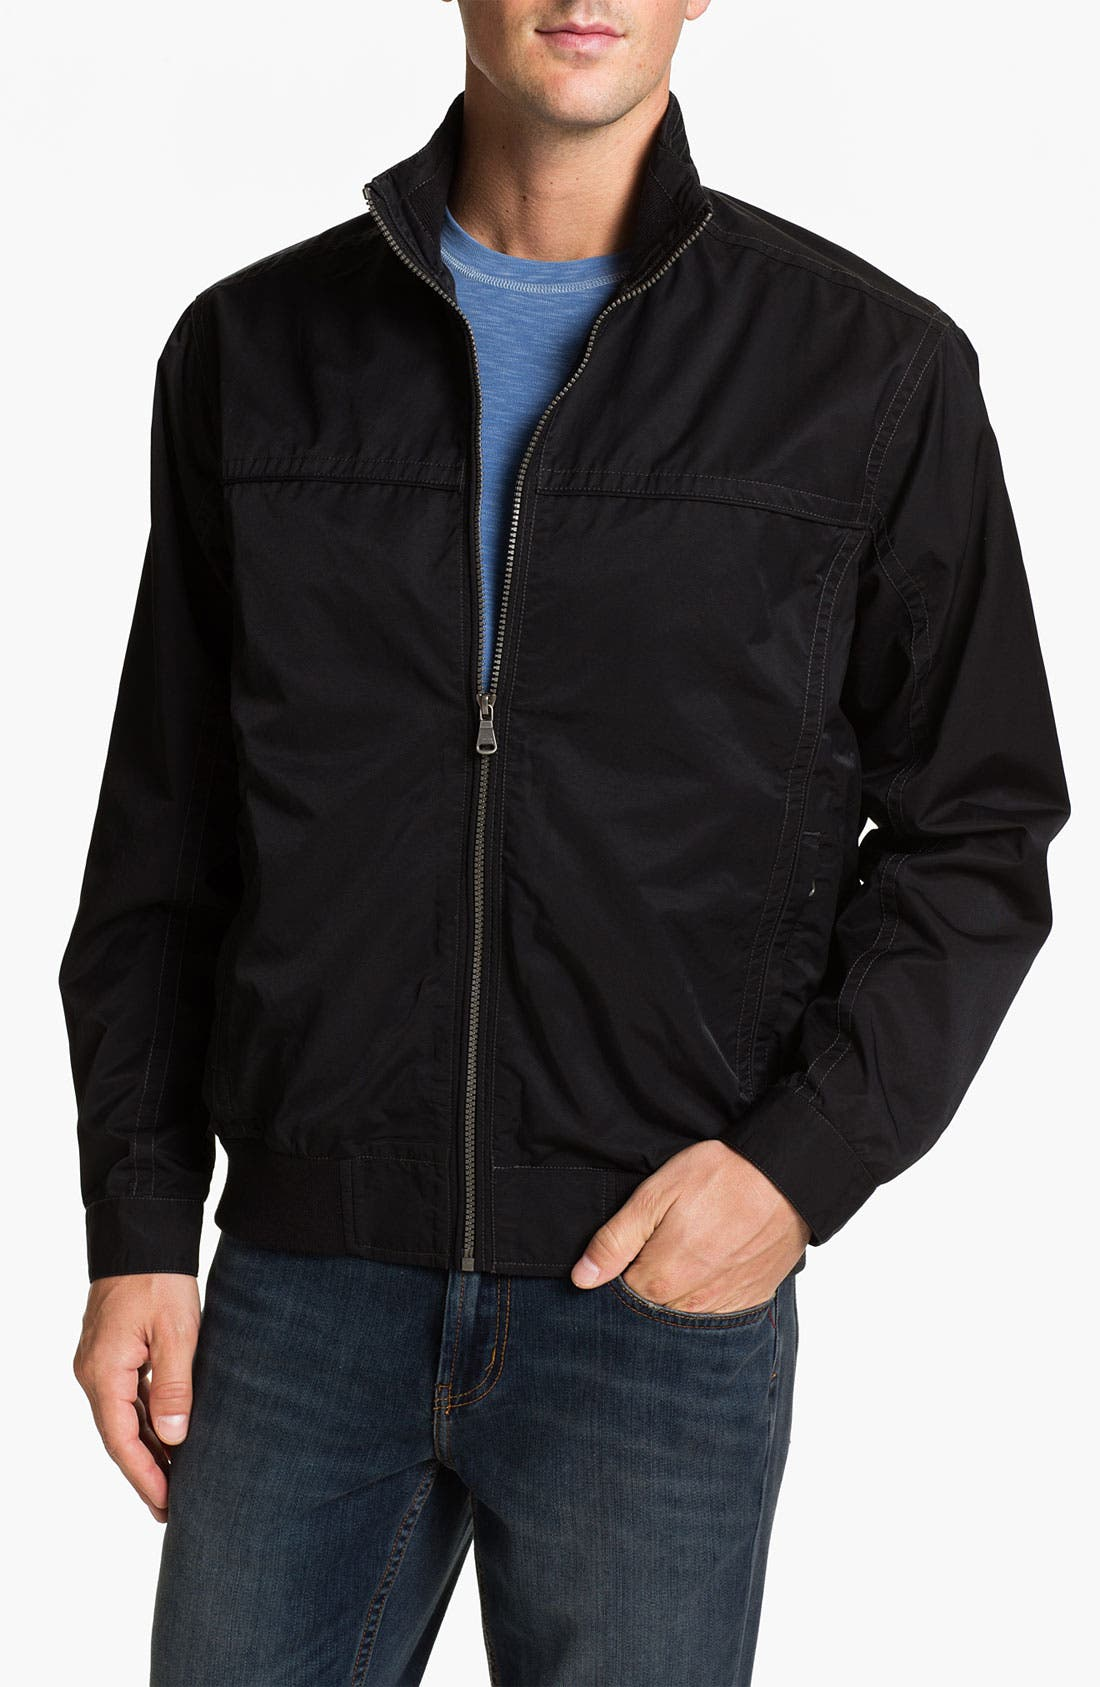 Alternate Image 1 Selected - Tommy Bahama 'Eisenhower' Jacket